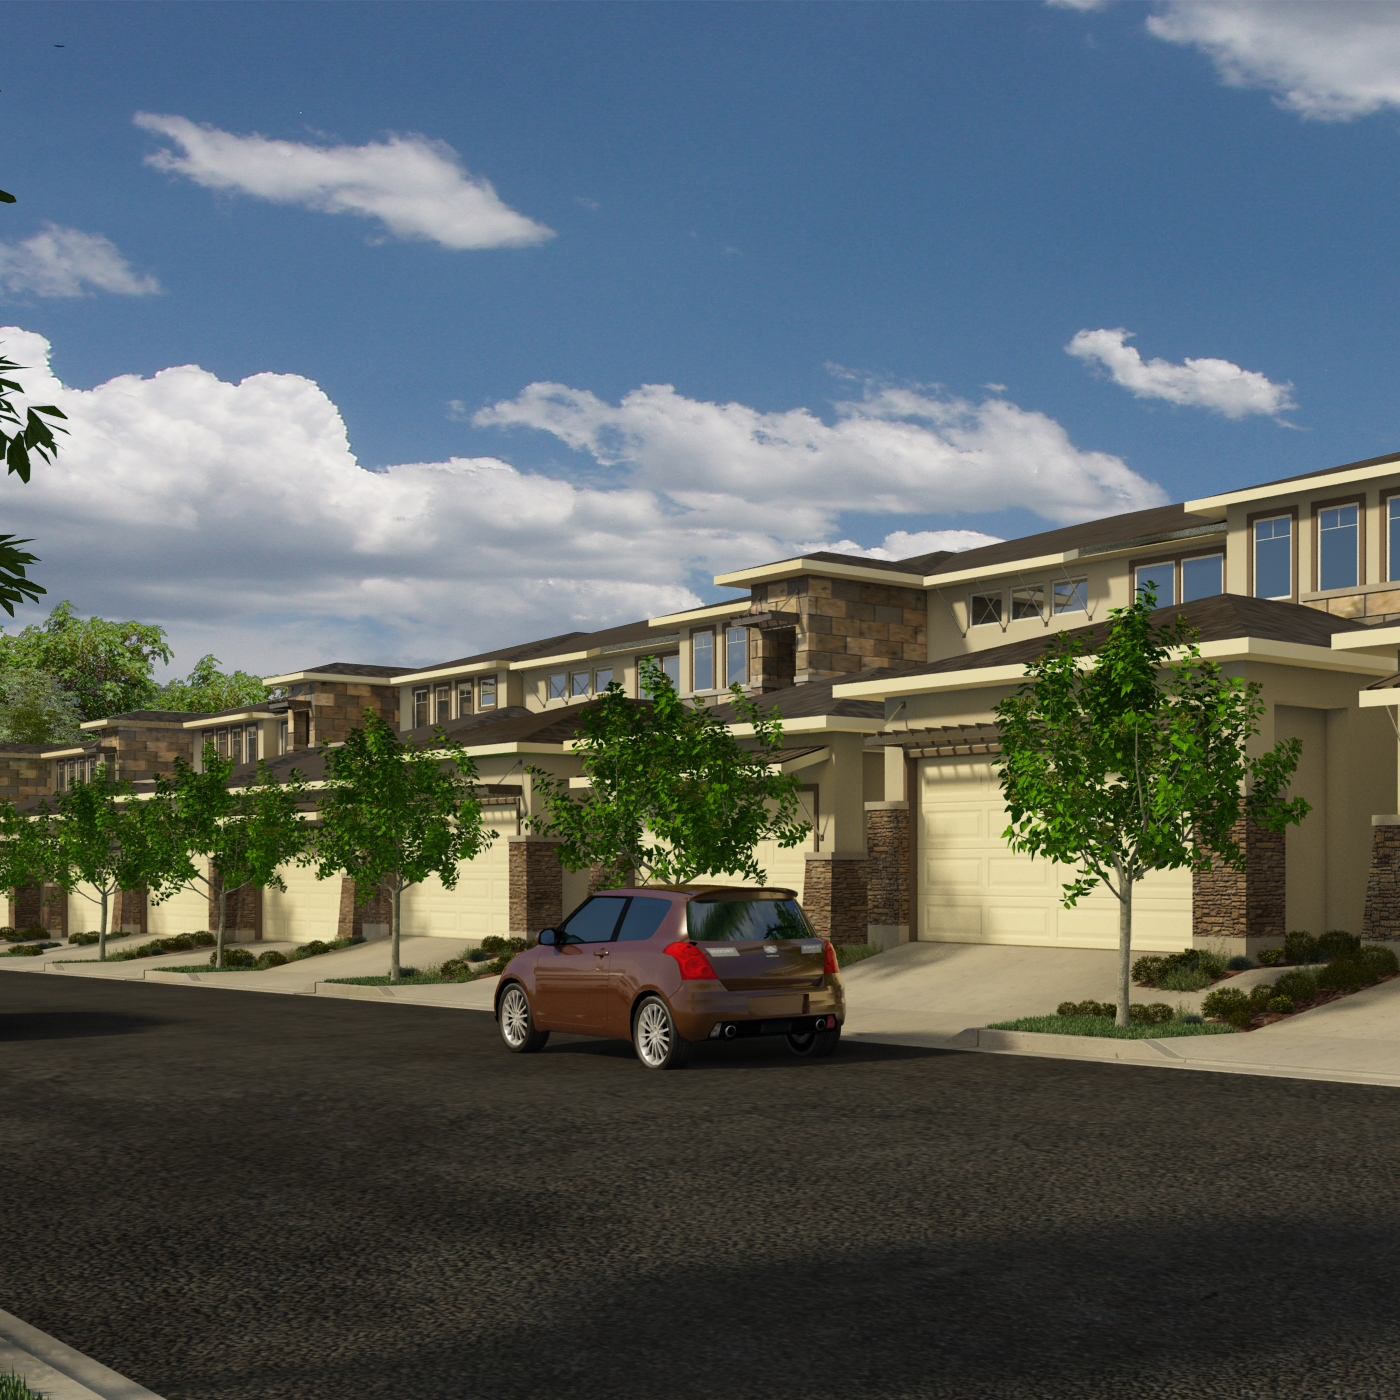 LIVE  MULTI-FAMILY ON THE BOARDS  LAS VENTANAS TOWNHOMES